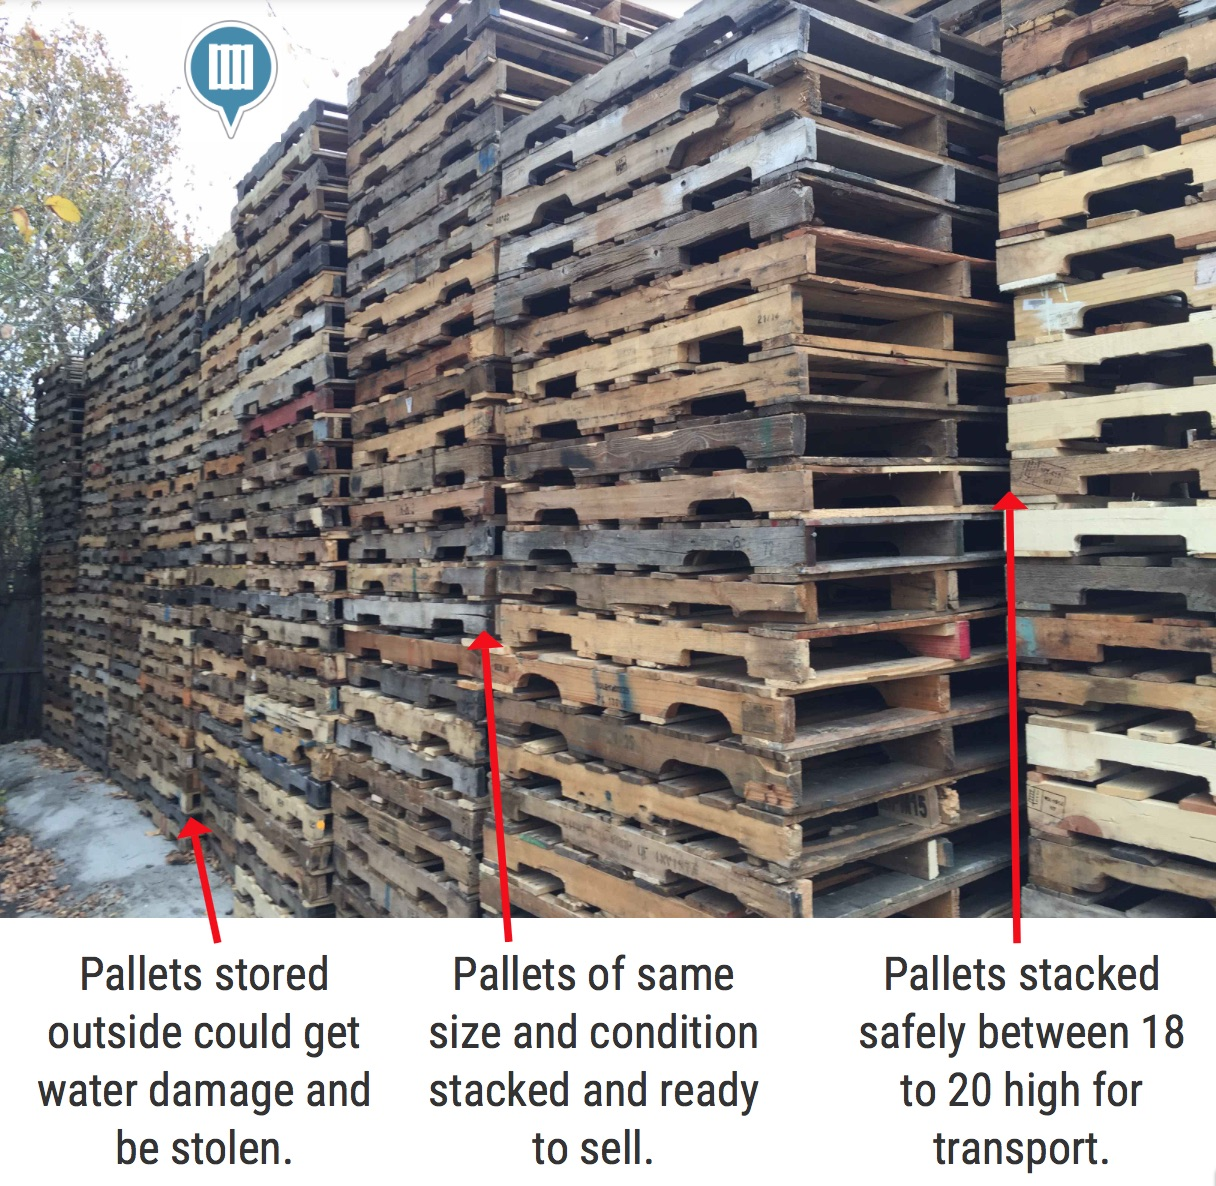 B-Grade Pallets Ready for Sale